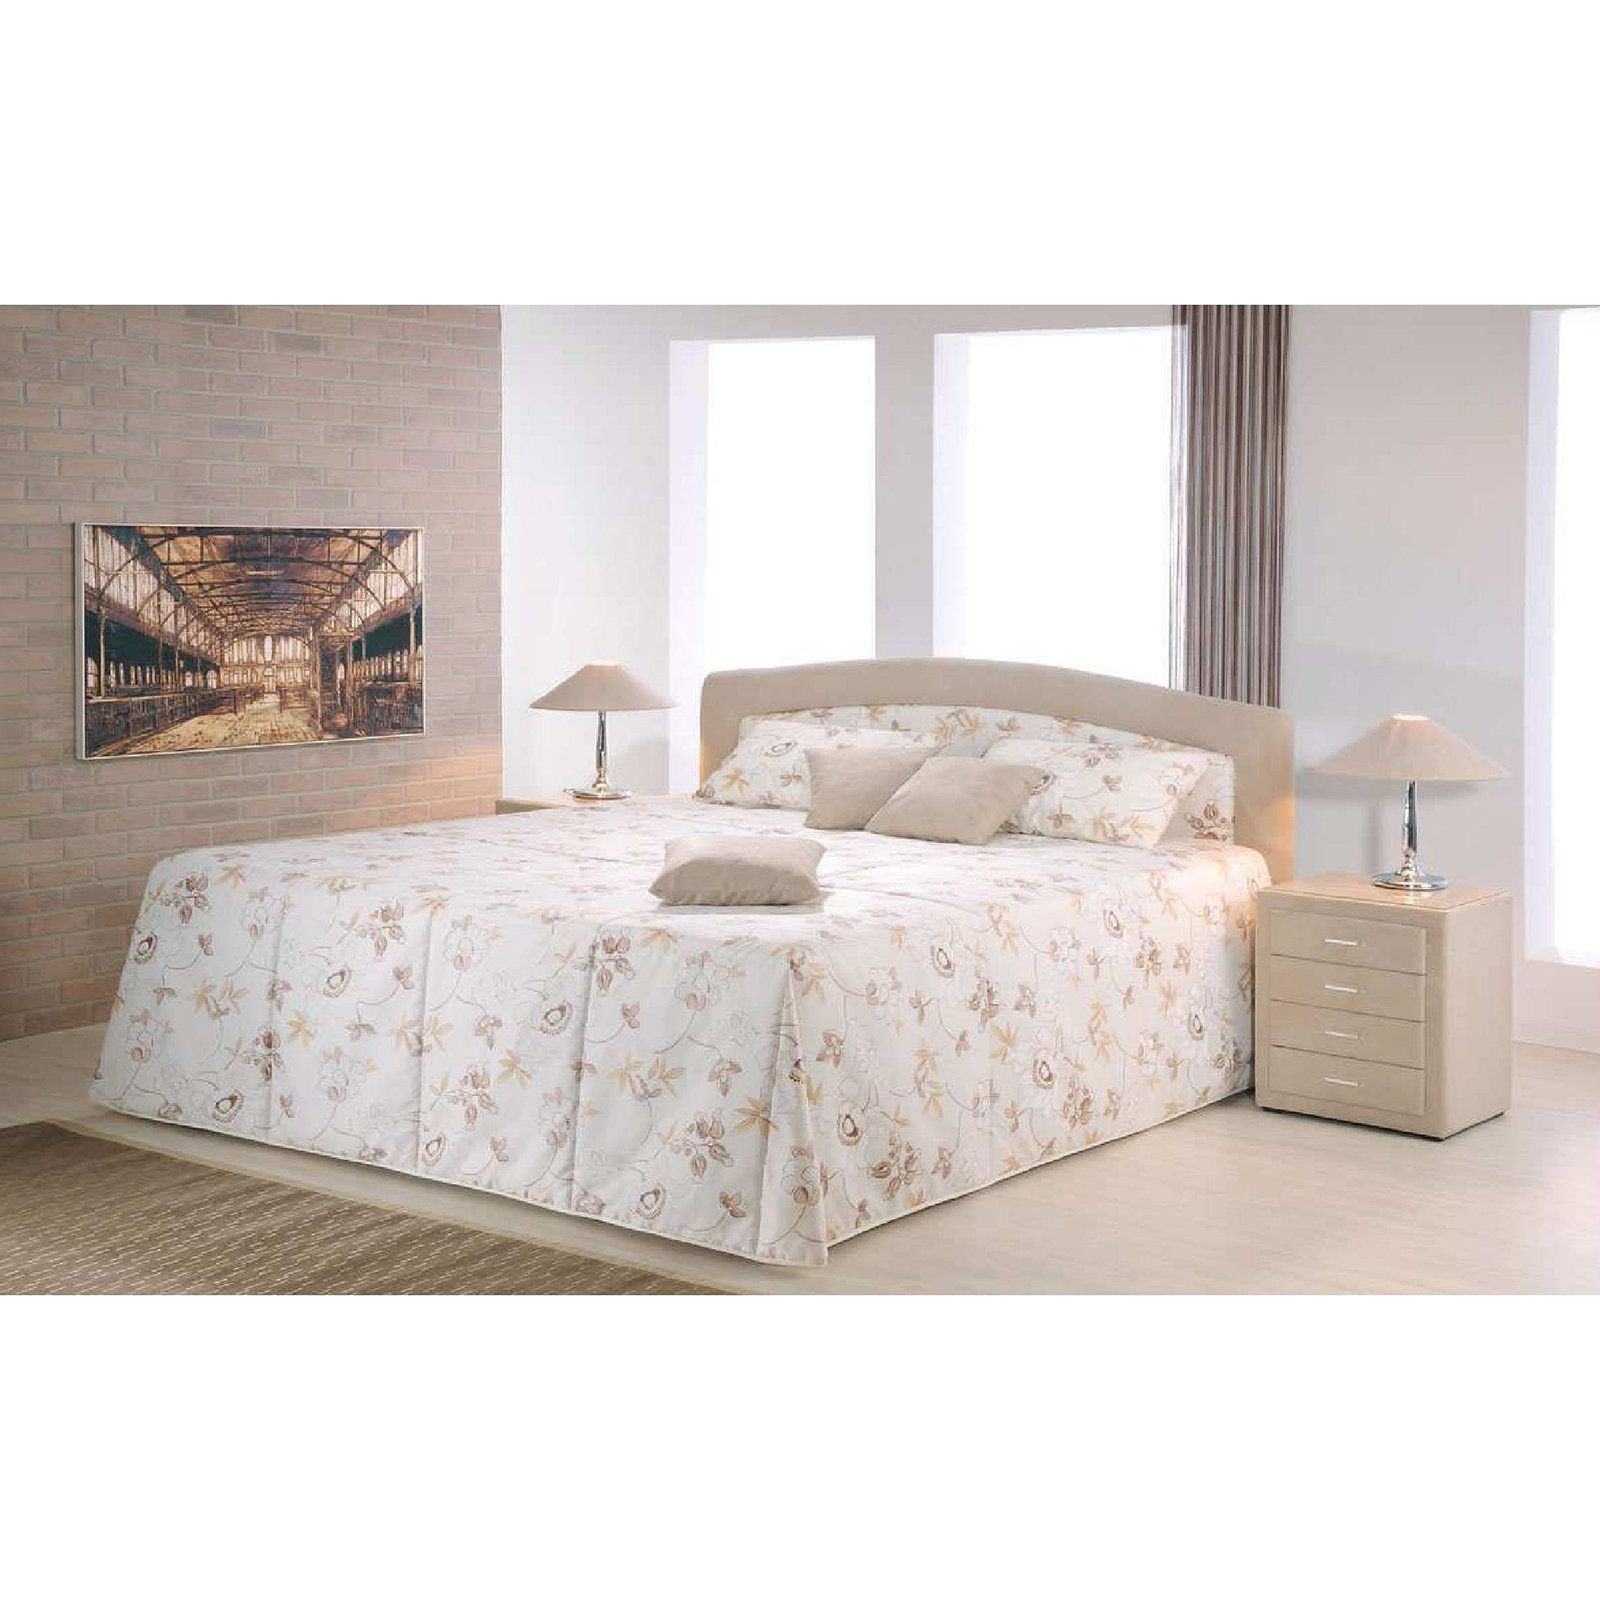 Polsterbett Princess Polsterbett Mit Tagesdecke Princess 180x200 Cm Bedroom Decor